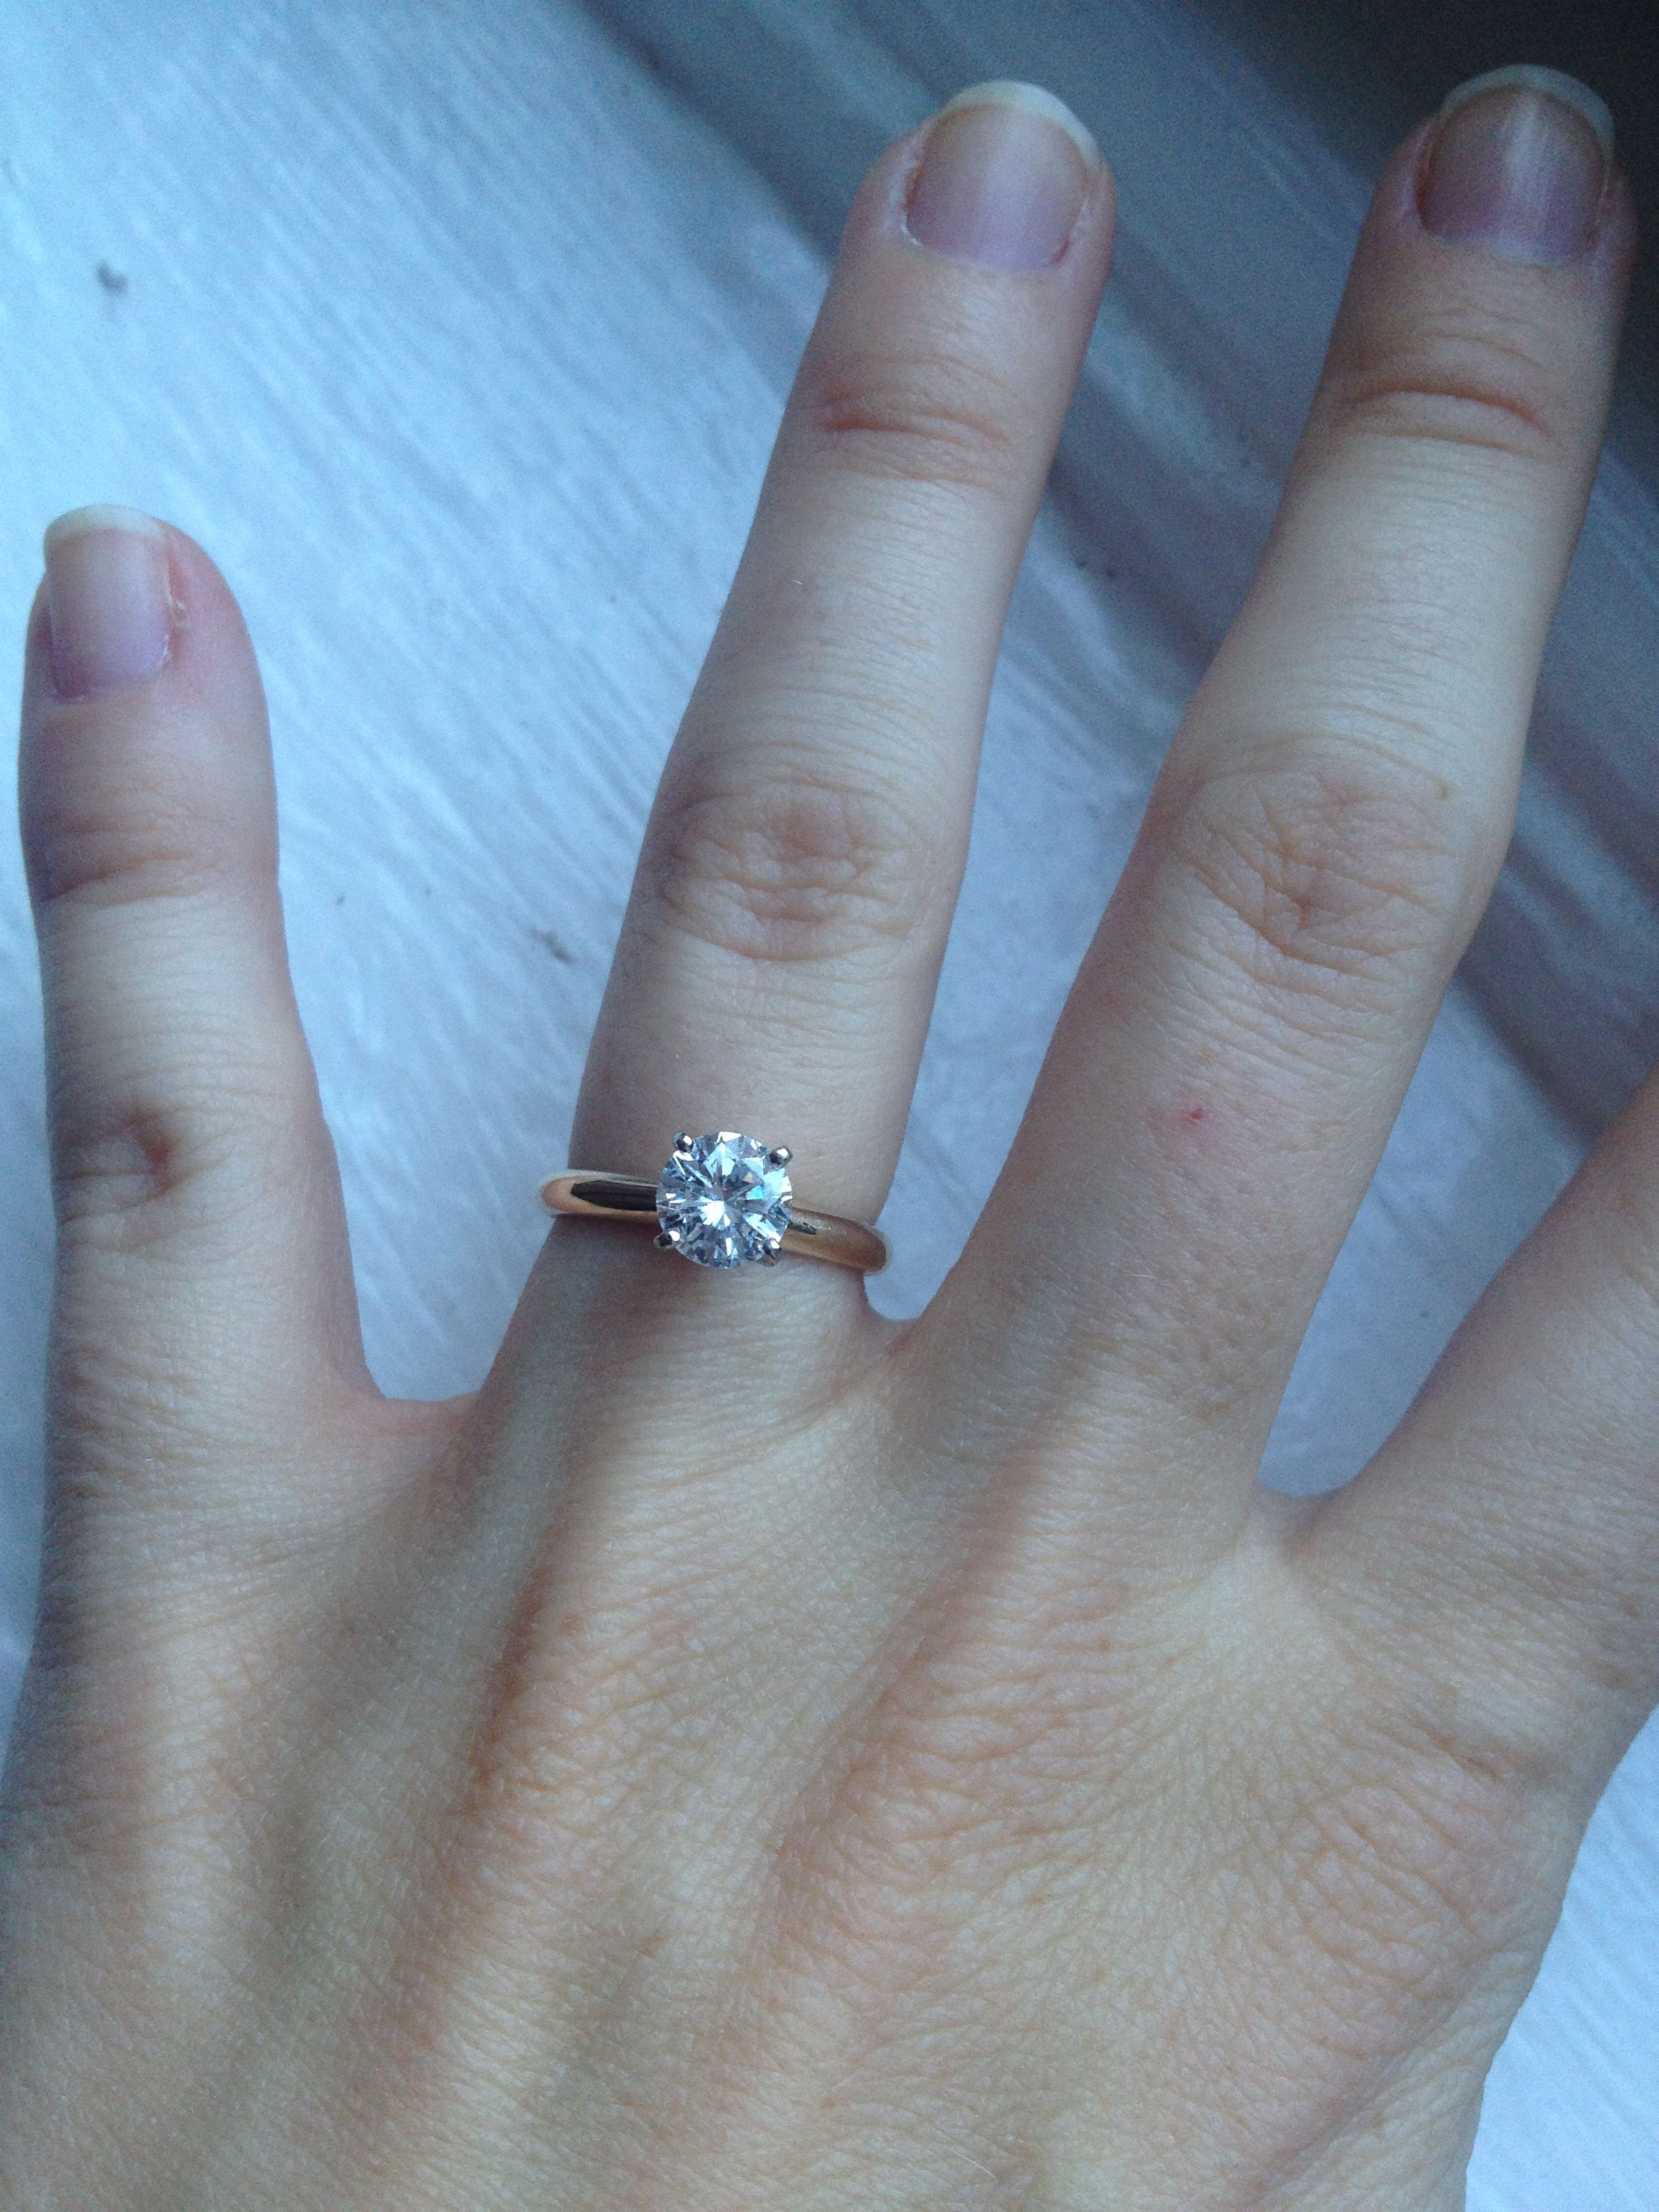 Pin By Stephanie Buck On Jewels Wedding Rings Engagement Gold Solitaire Engagement Ring Engagement Rings